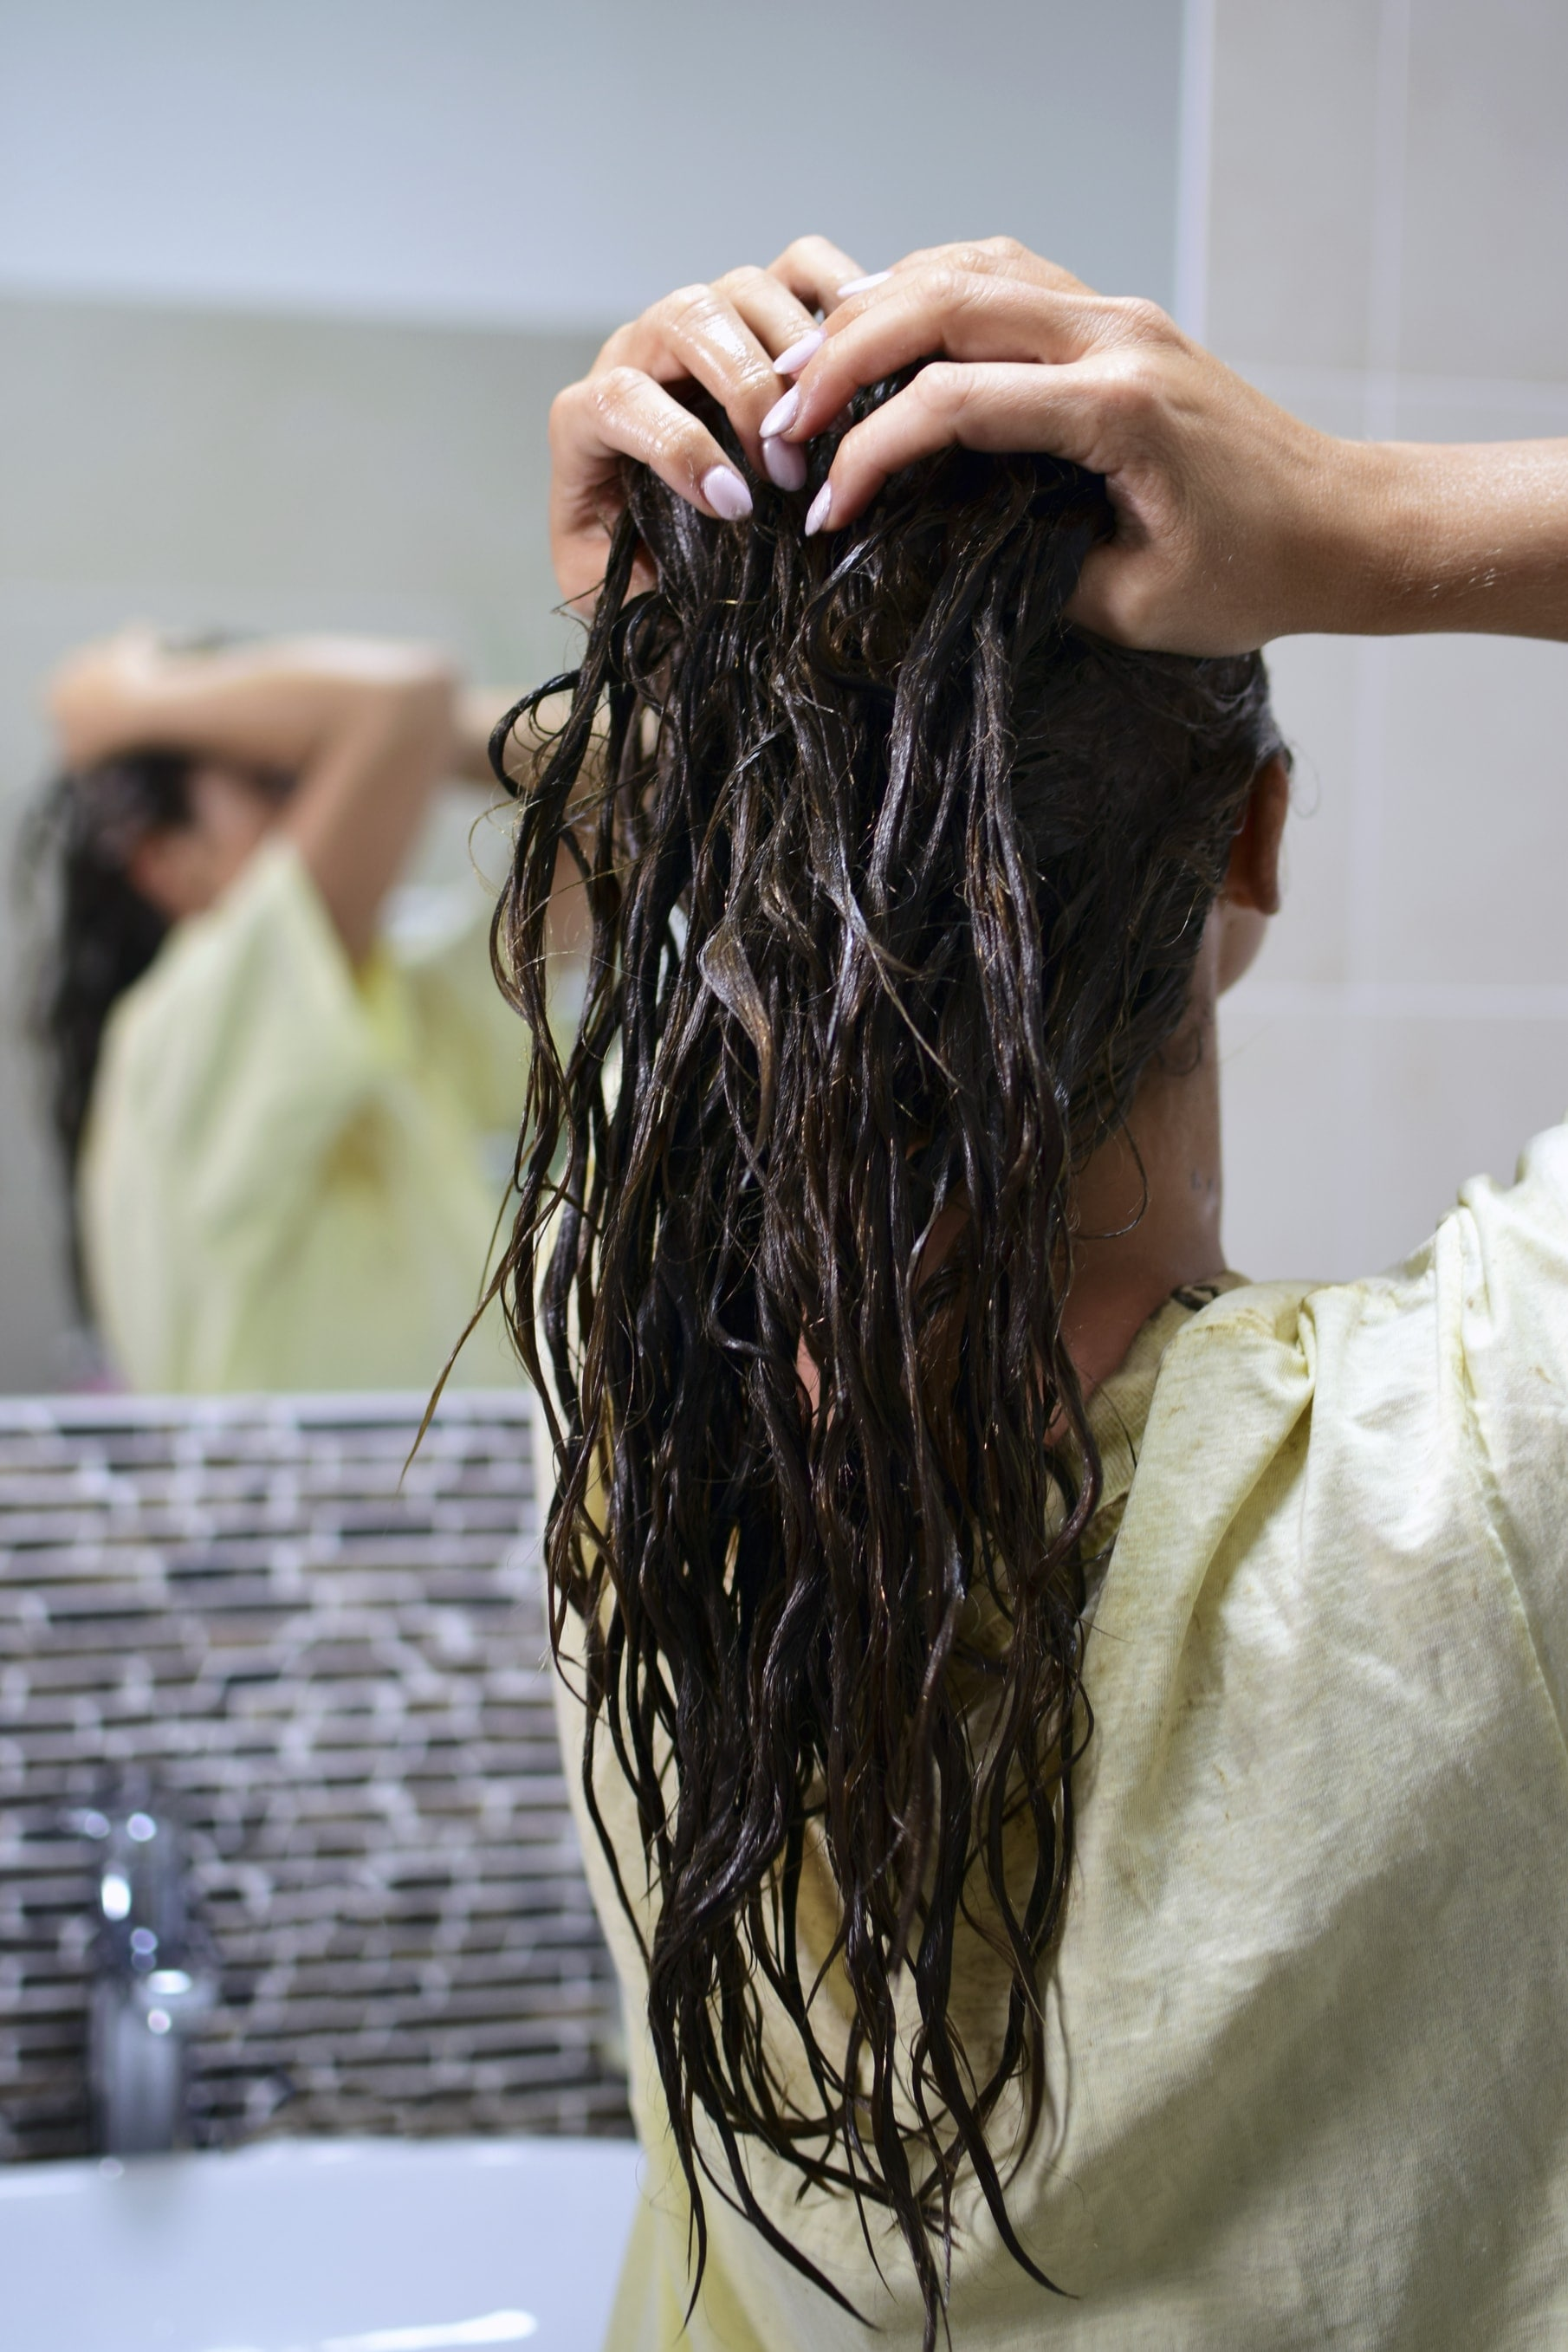 Hair mask recipe: Back shot of young woman with wet dark brown curly hair with a deep conditioner in it, posing in a bathroom